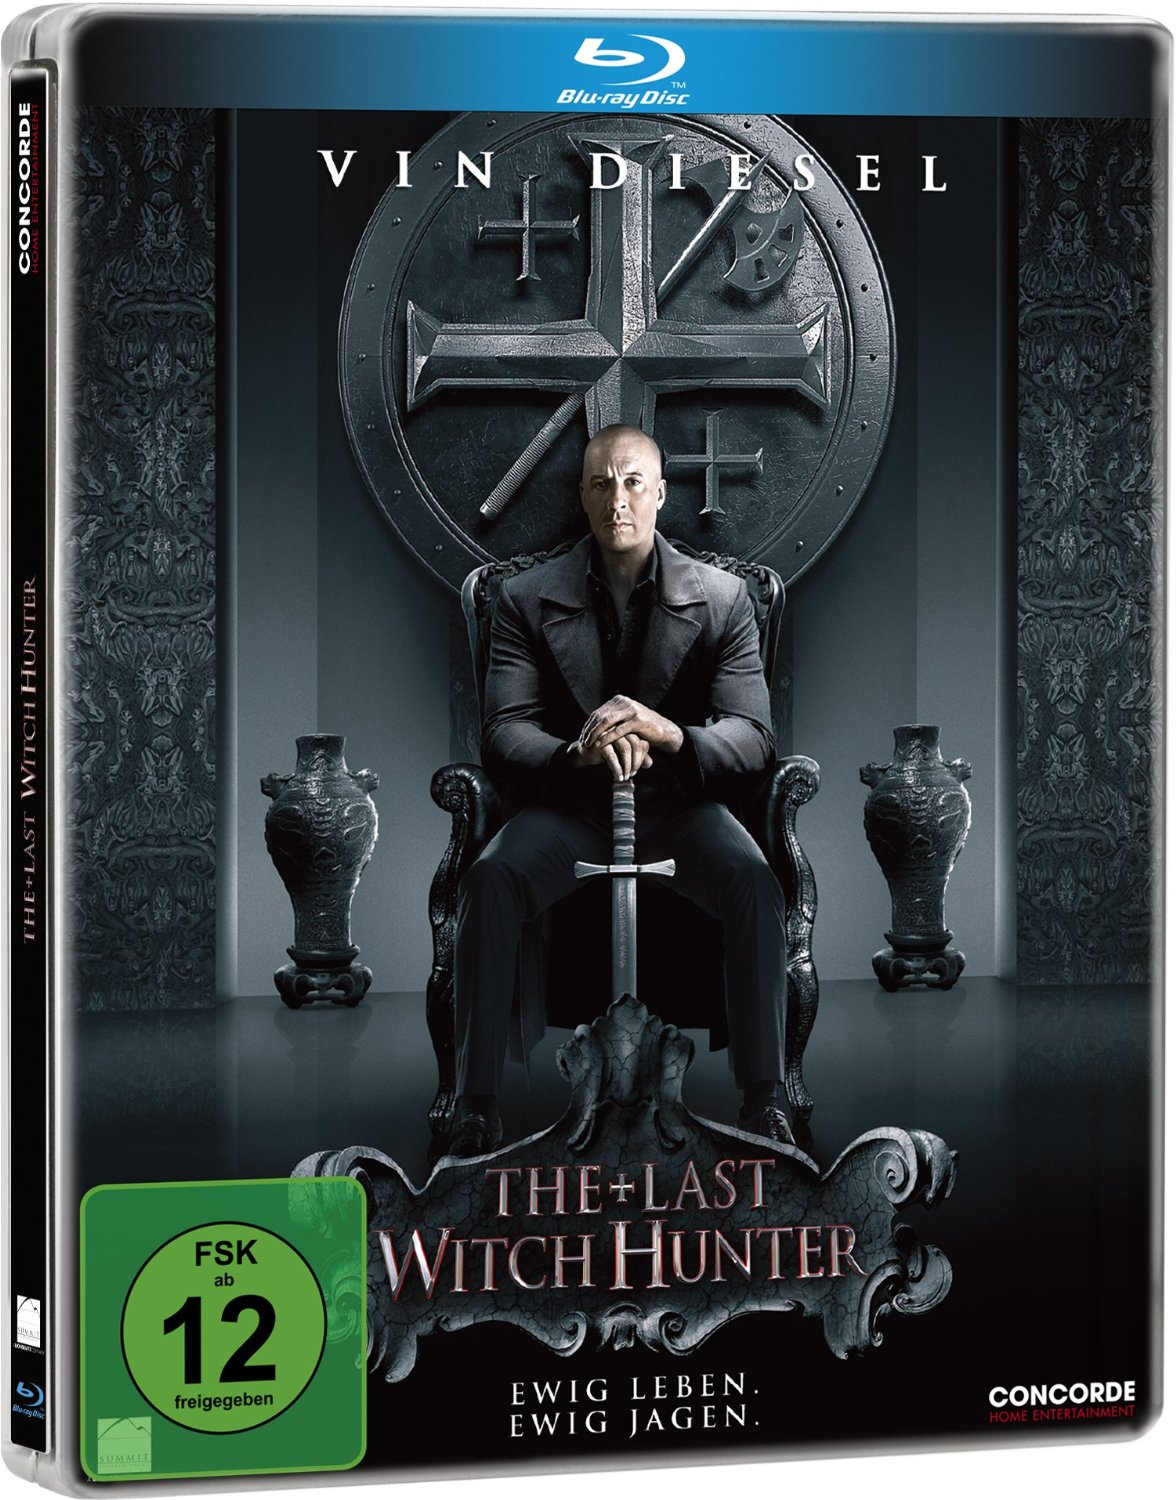 The Last Witch Hunter steelbook